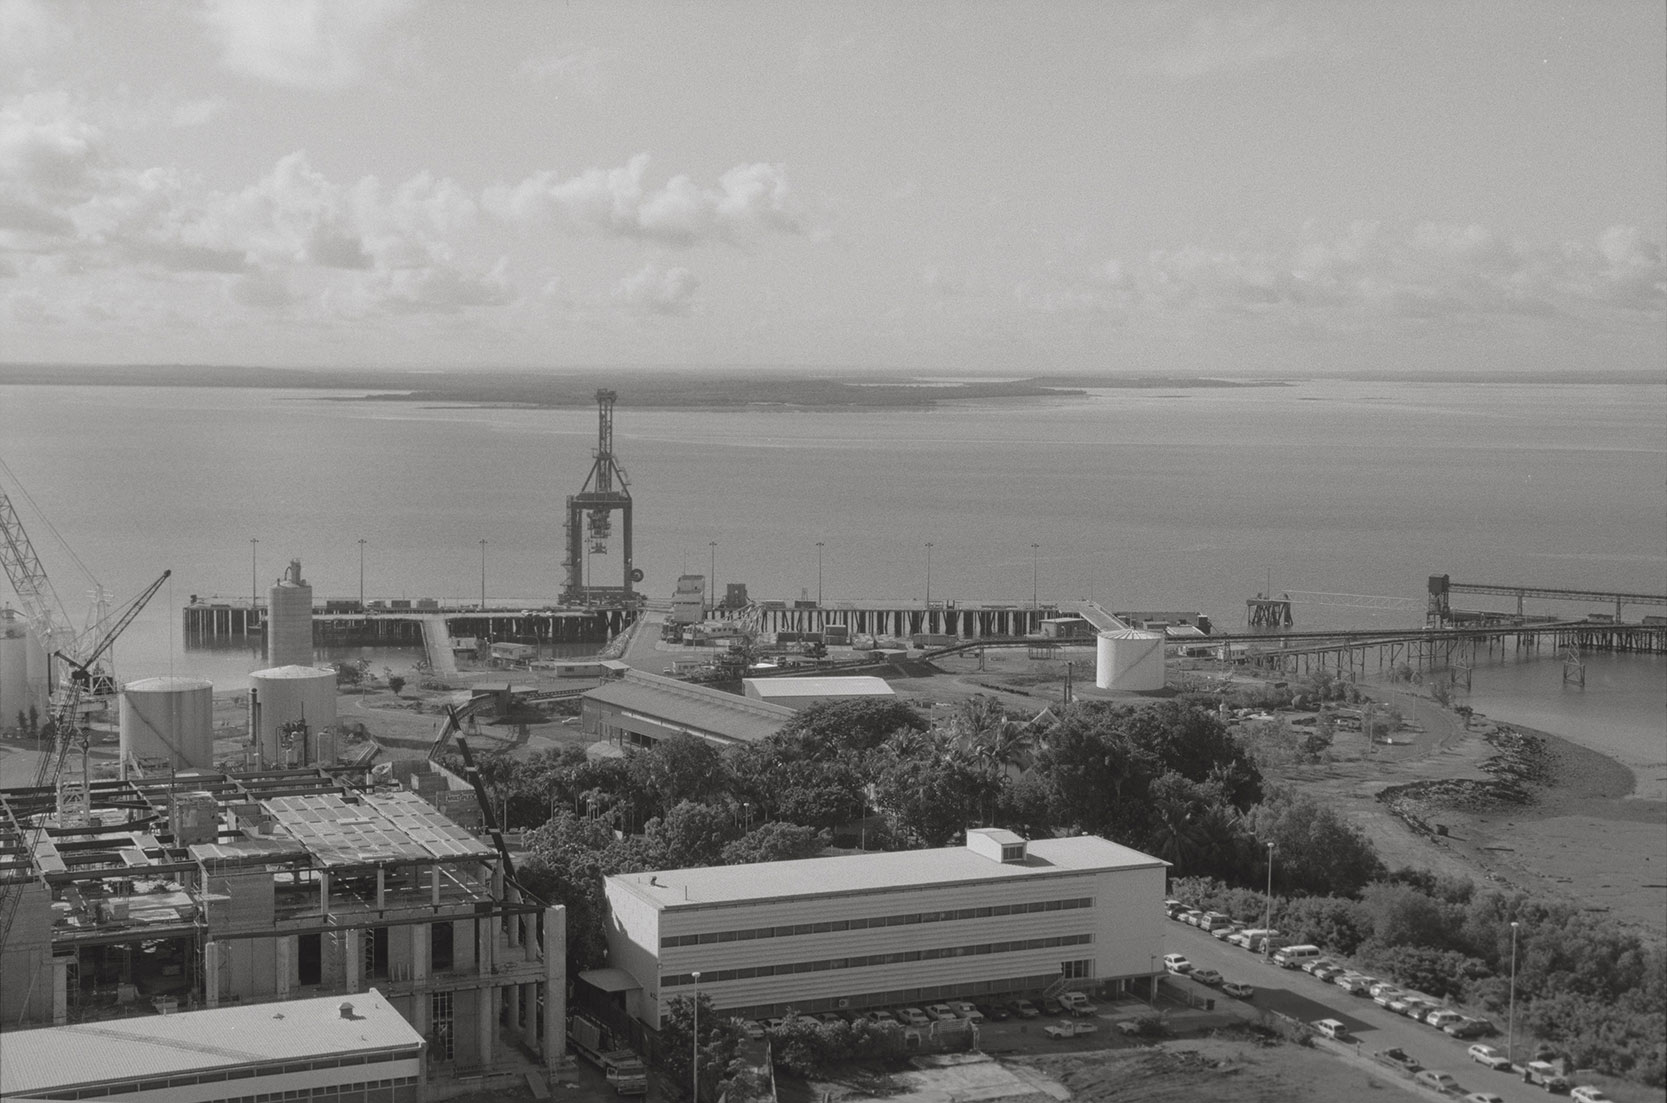 Darwin skyline from the roof on NT House, toward Fort Hill Wharf, Supreme Court under construction, 2 February 1990<br />Image courtesy of Library & Archives NT,  Department of the Chief Minister, NTRS 3823 P1, Box 11, BW2881, Image 33